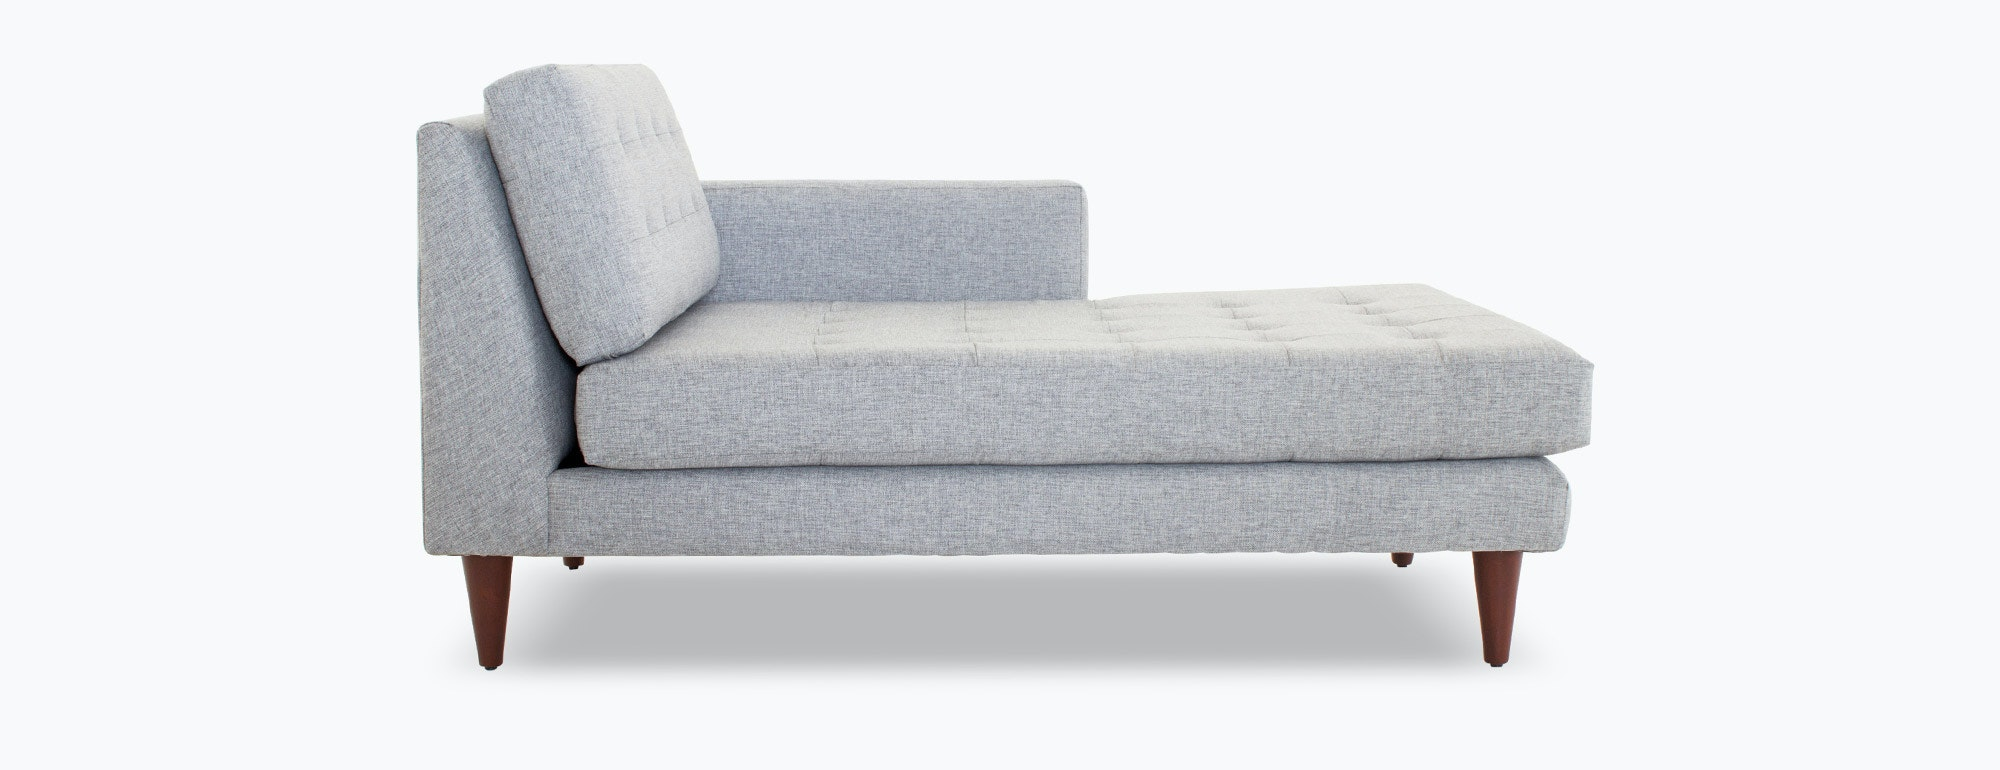 Single arm sofa george 94 one arm sofa with chaise for One arm sofa chaise